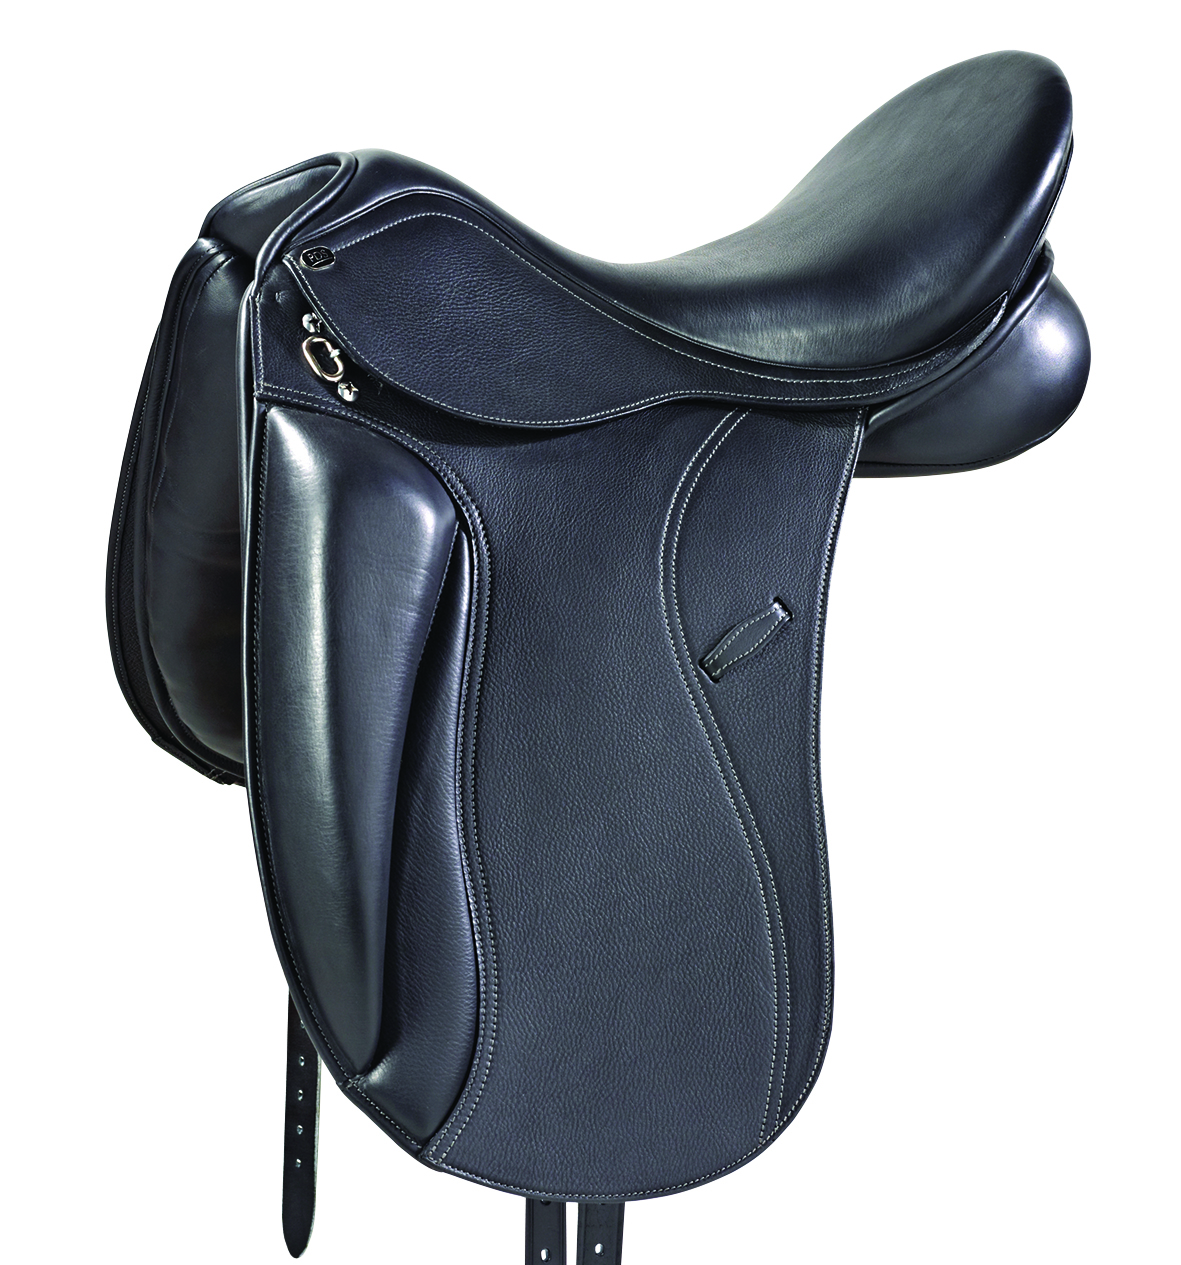 S960 GRANDE - GFS and Carl Hester unveil the four new PDS saddles set to change the world of dressage